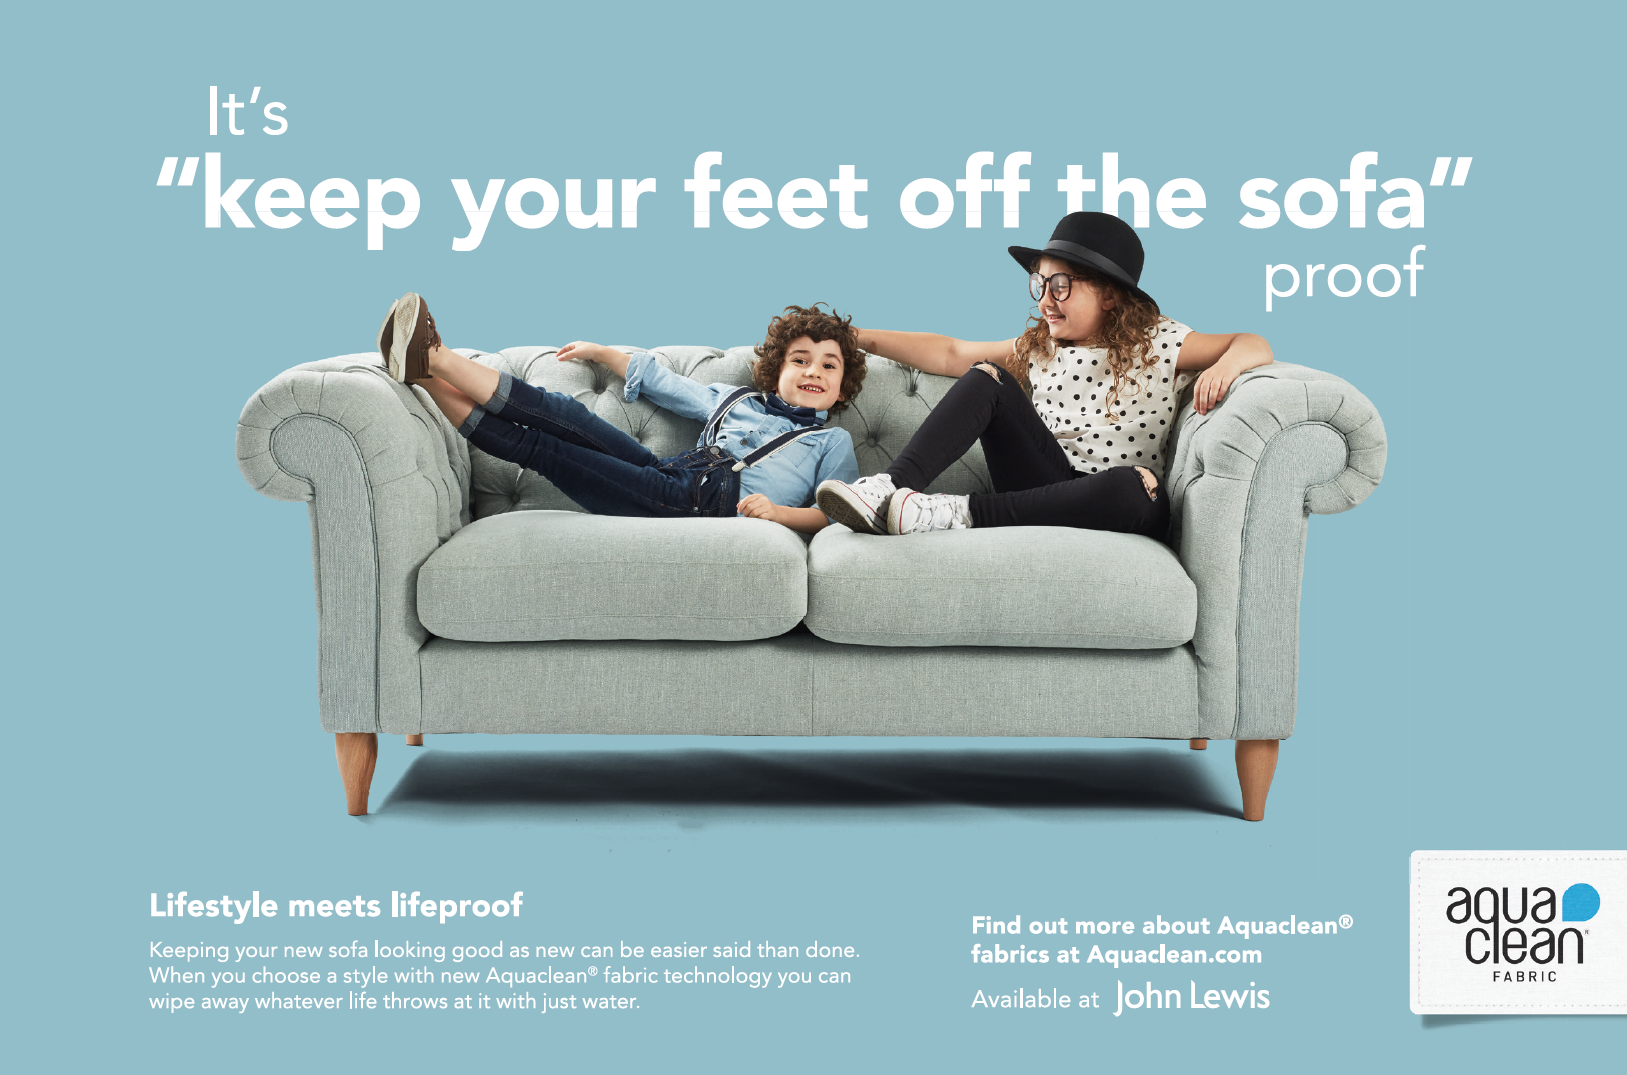 Print advert with boy and girl playing on a sofa